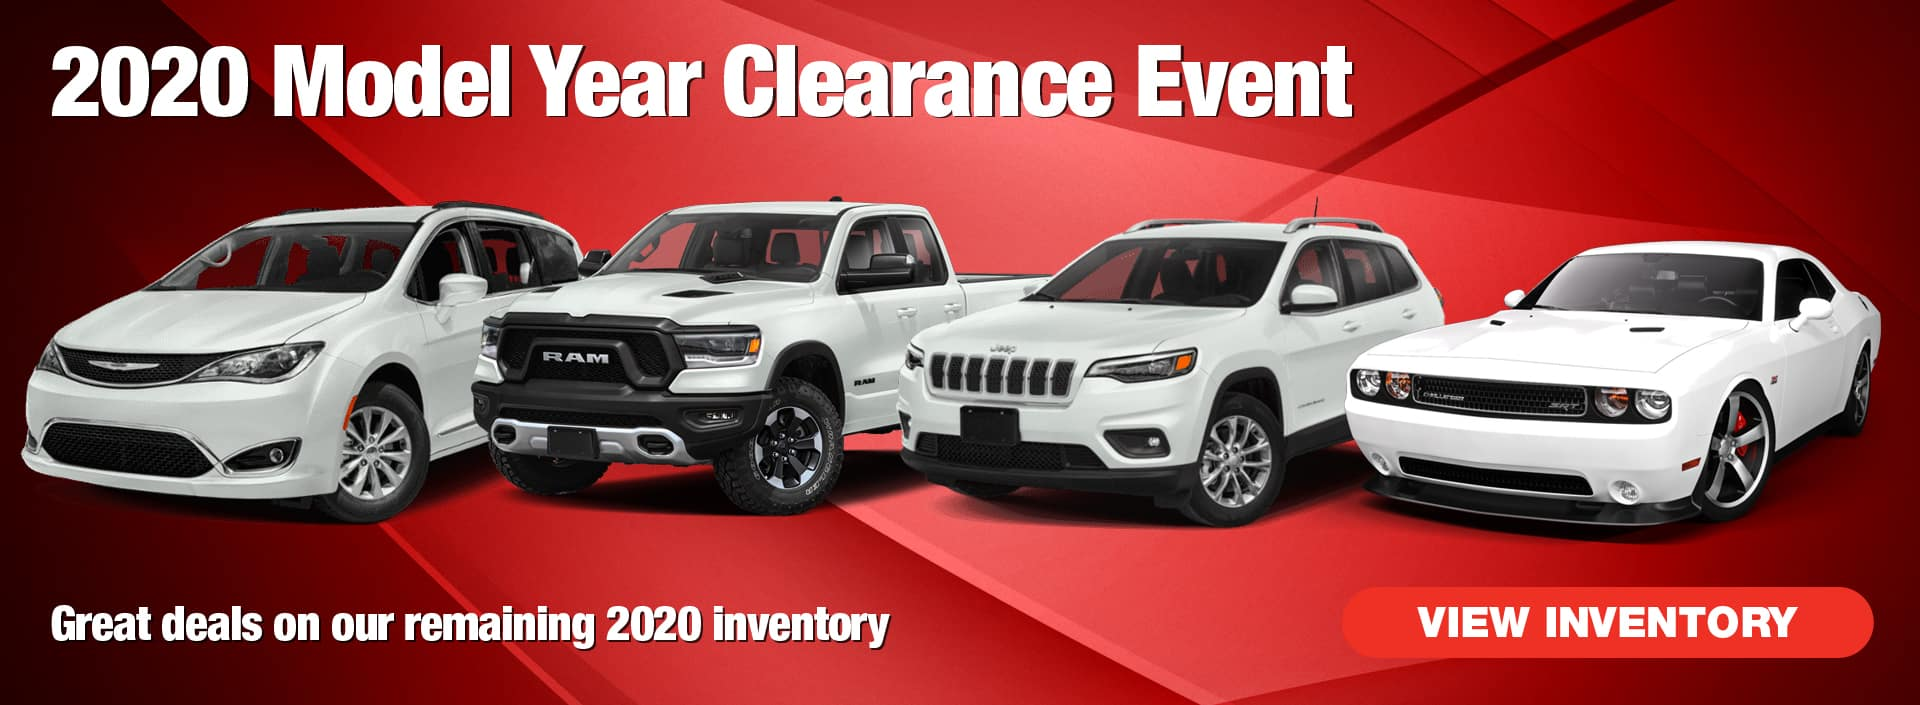 2020 Model Year Clearance Event